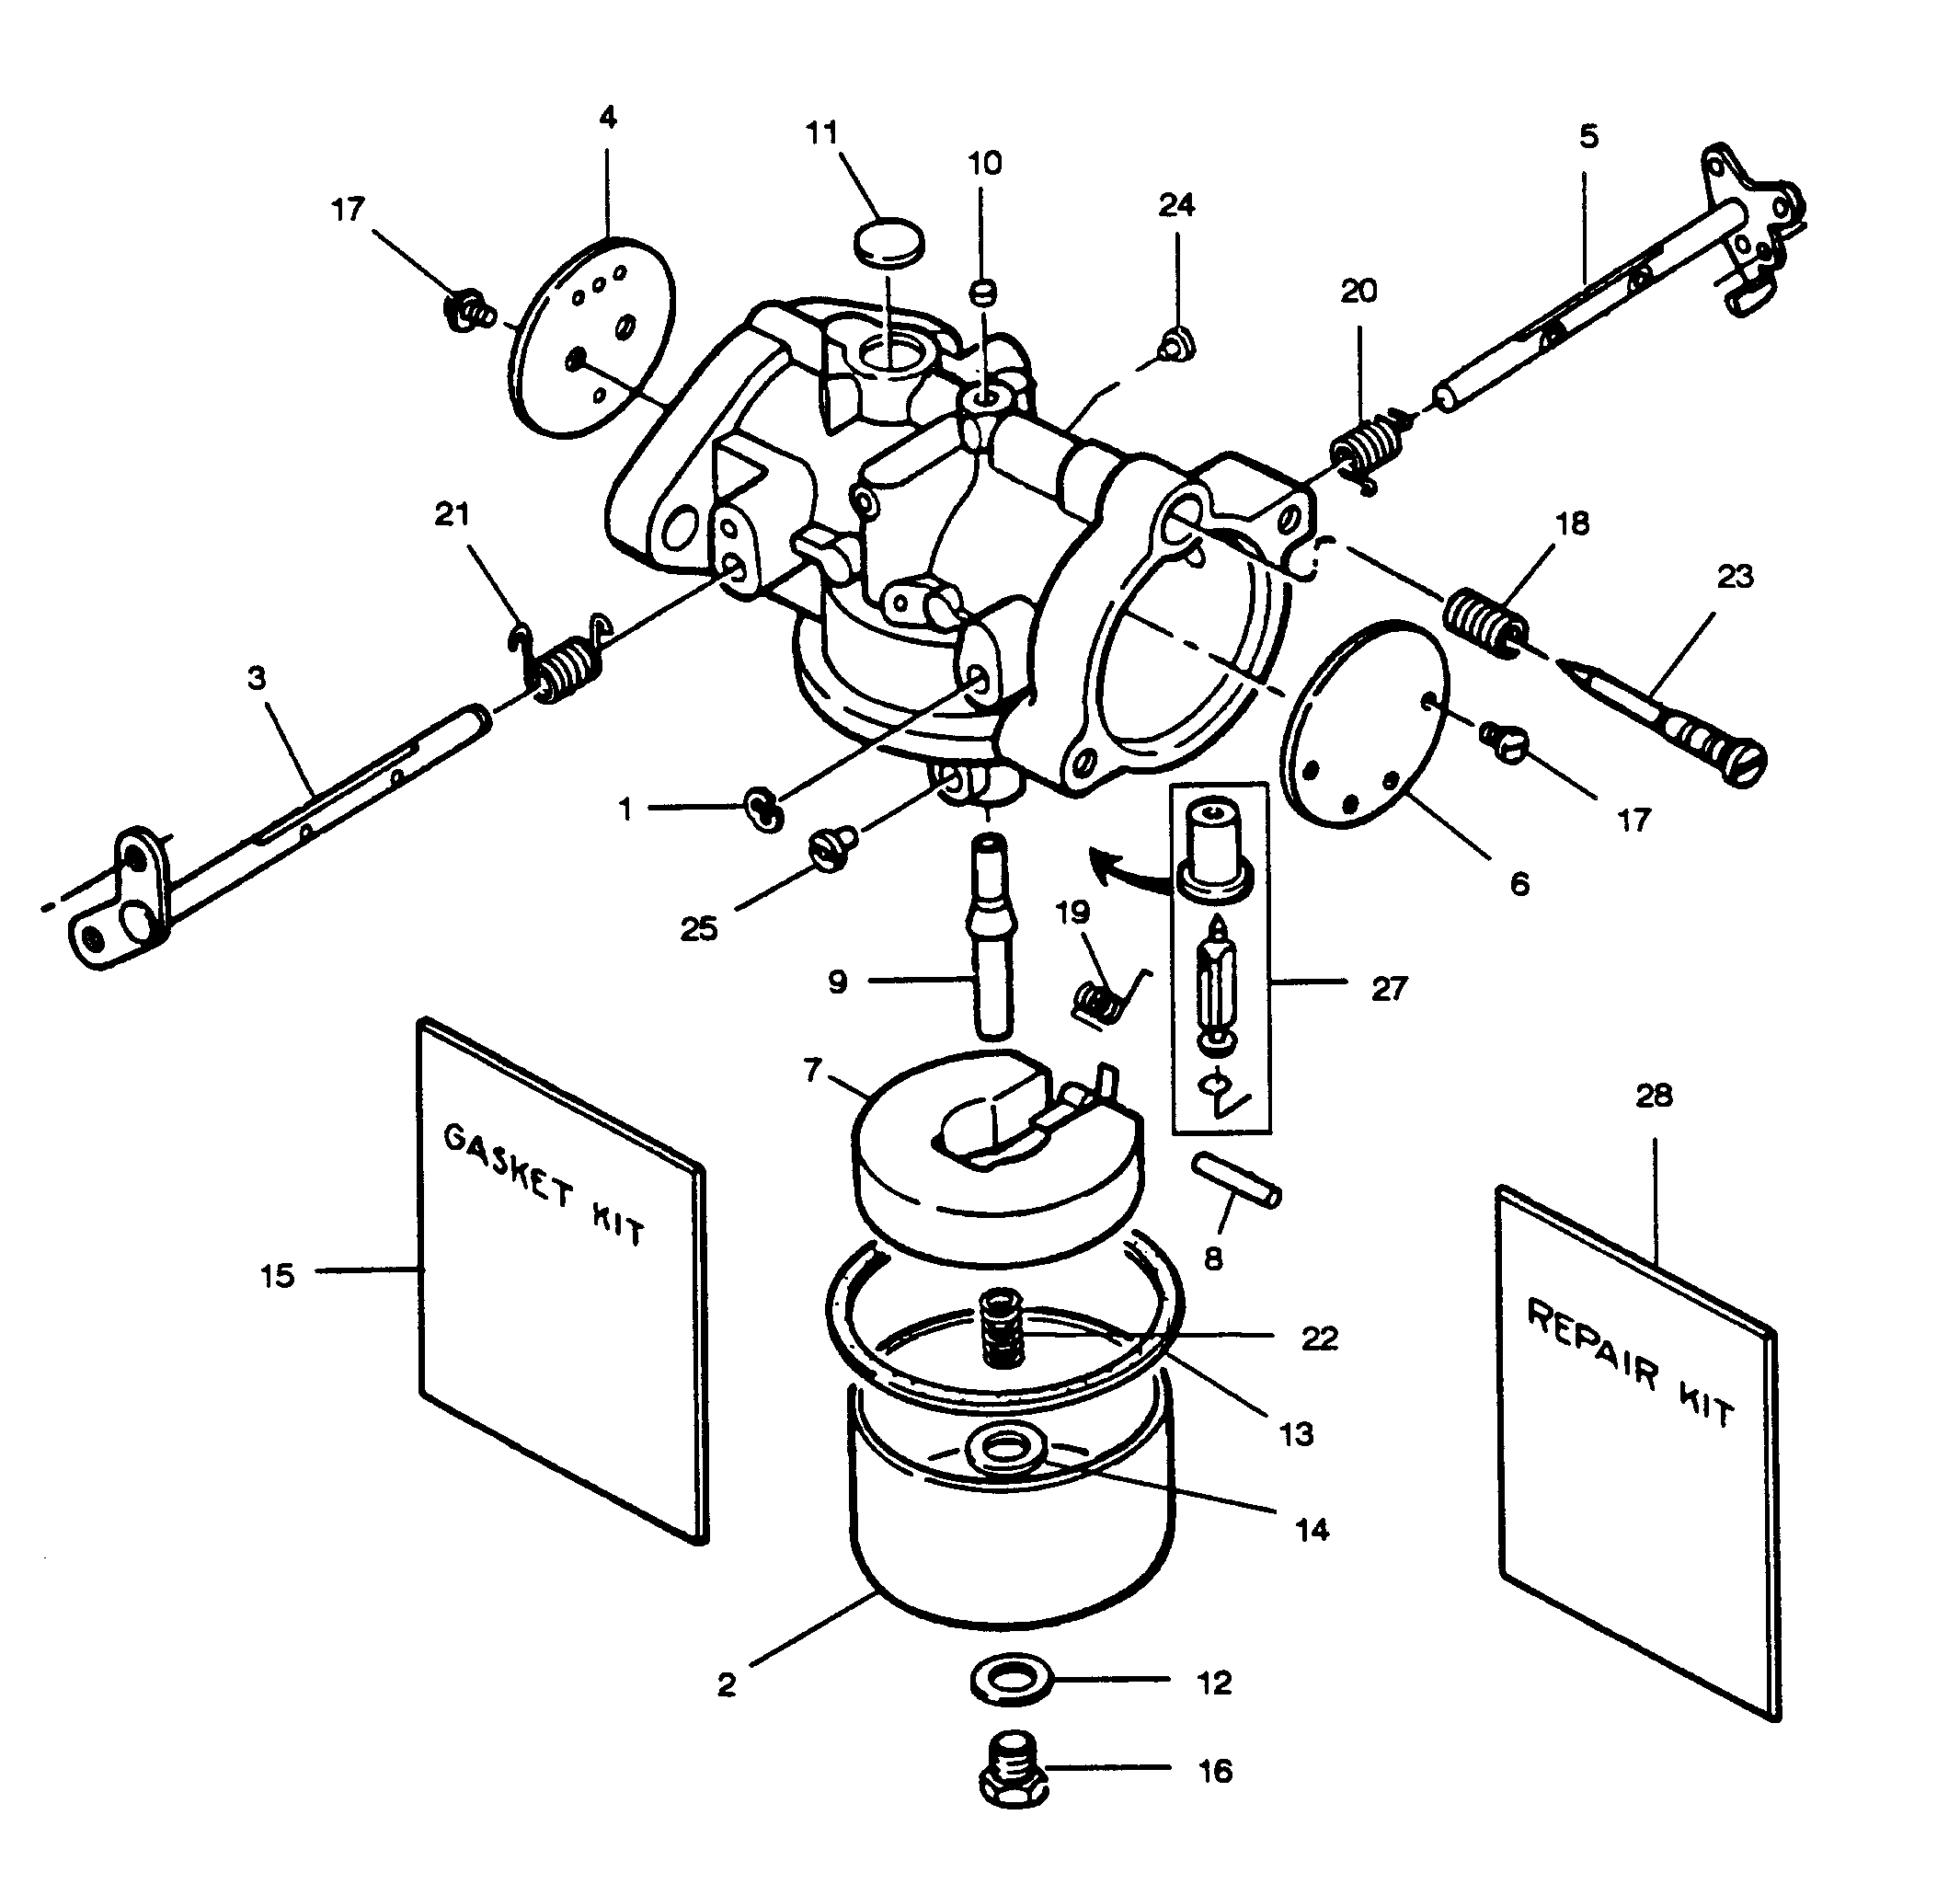 1989 Mercury Outboard Engine Parts Diagram • Wiring